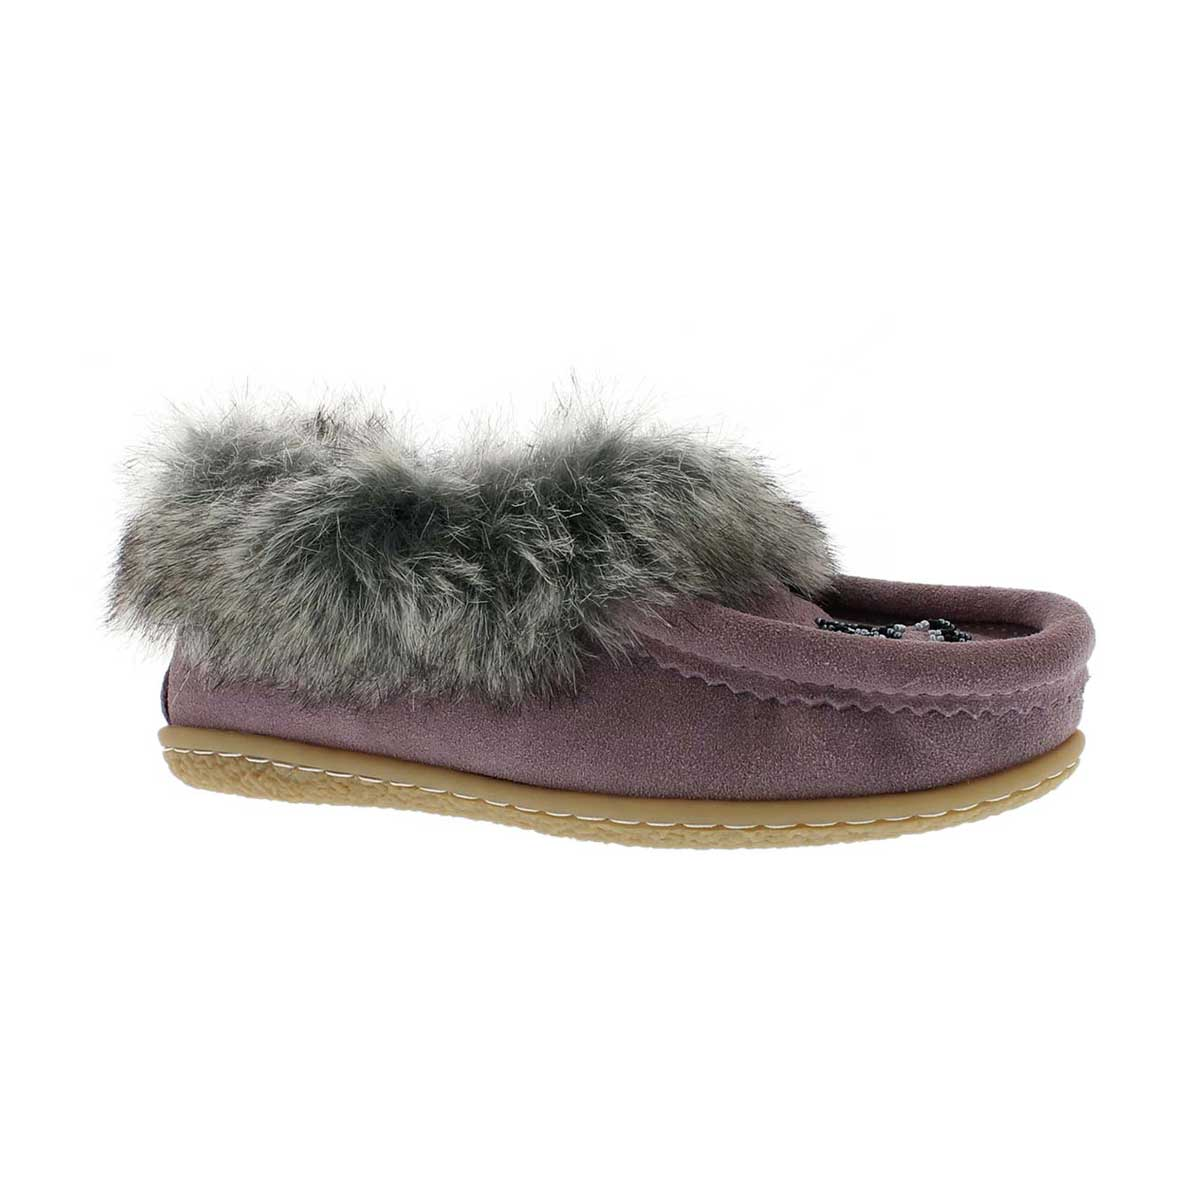 Girls' CUTE 2 JR mauve faux rabbit moccasins